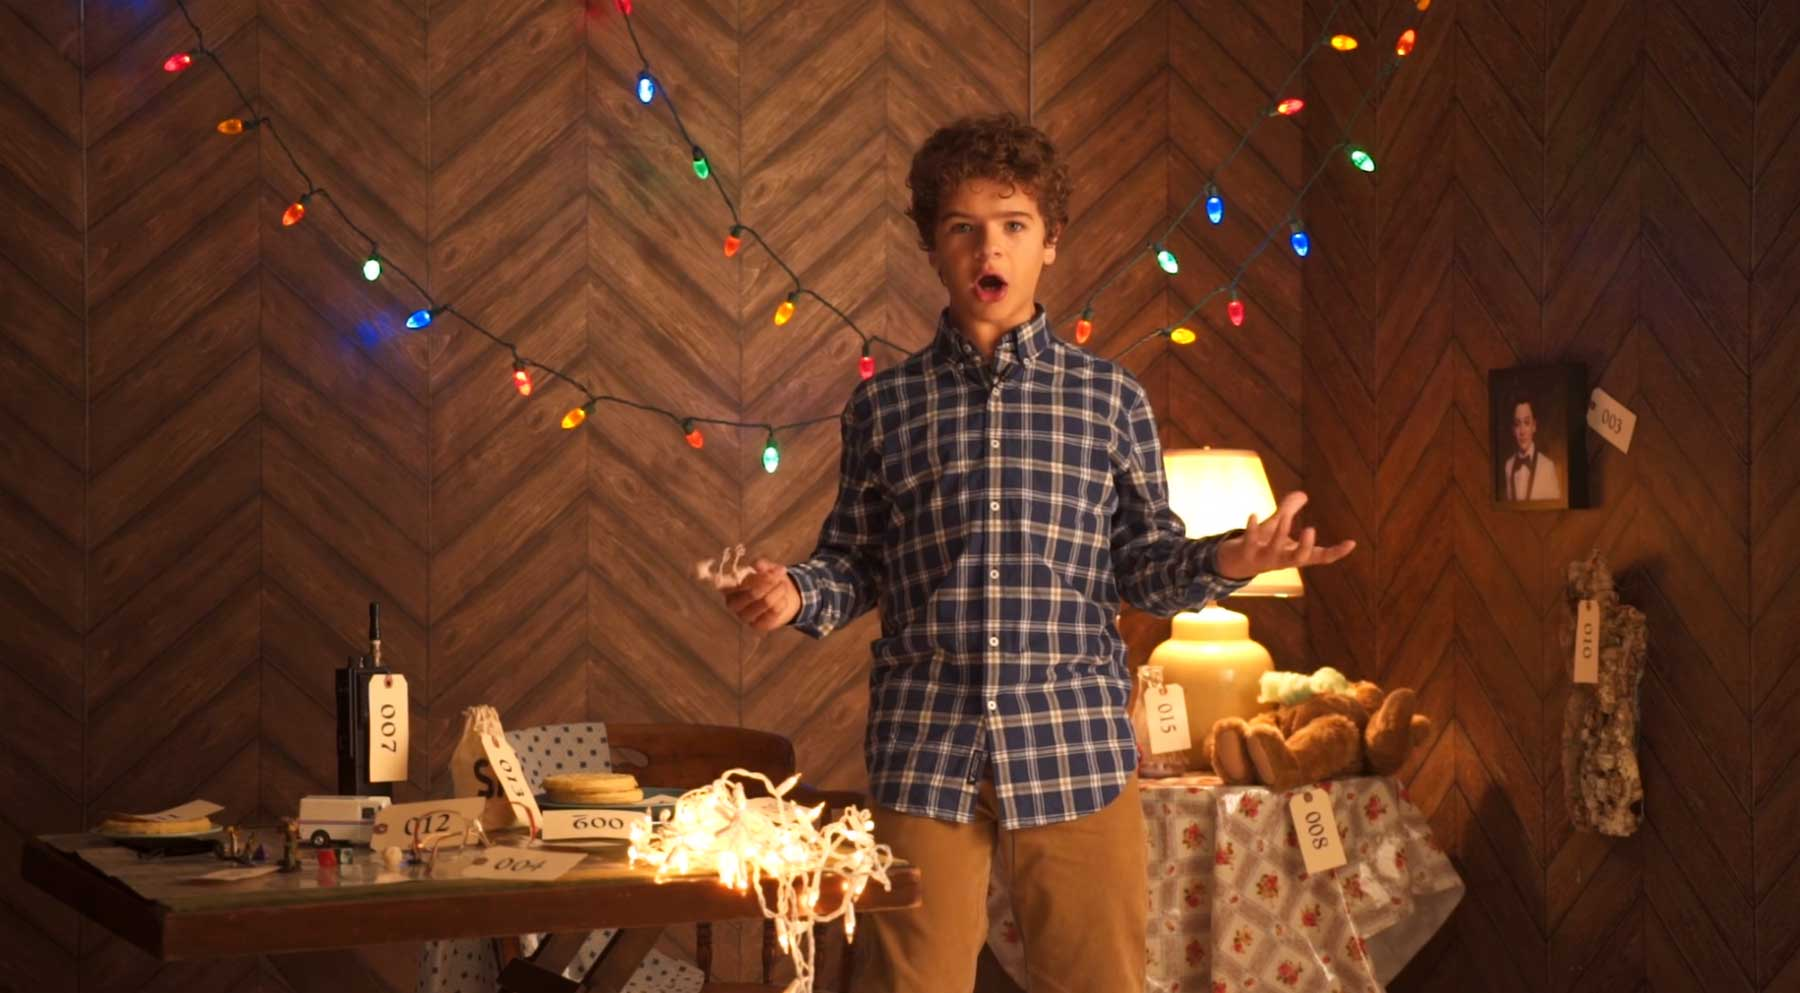 stranger-things-staffel-1-recap Dustin fasst die 1. Stranger Things-Staffel in 7 Minuten zusammen